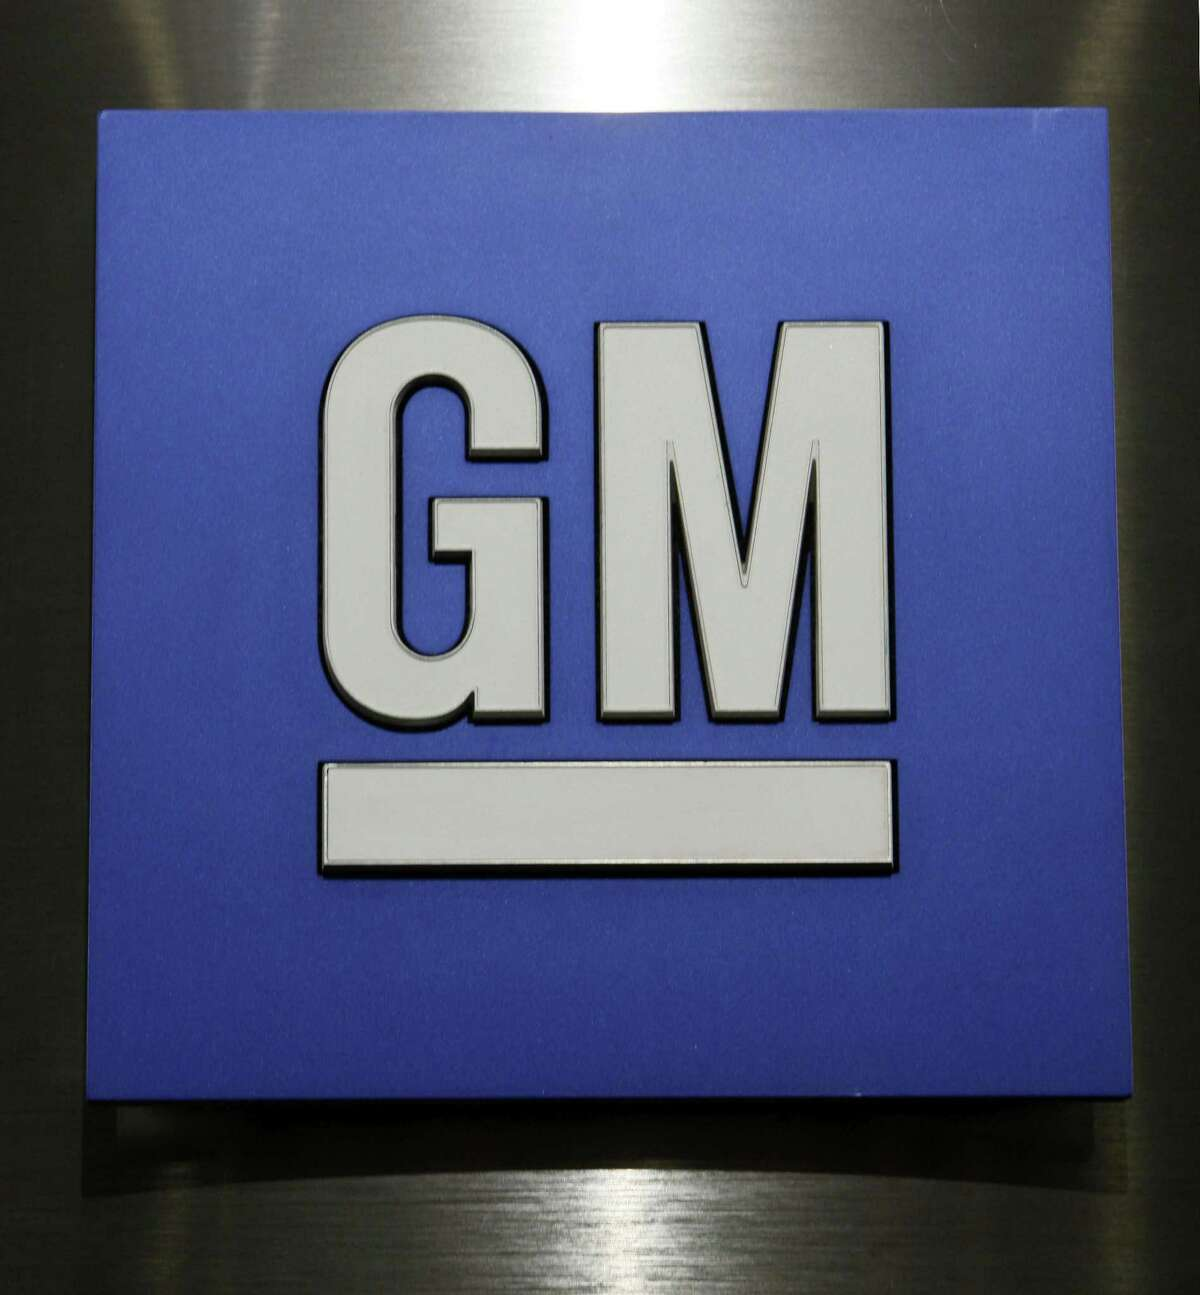 General Motors Co. logo is shown during a news conference in Detroit on Feb. 4, 2015.